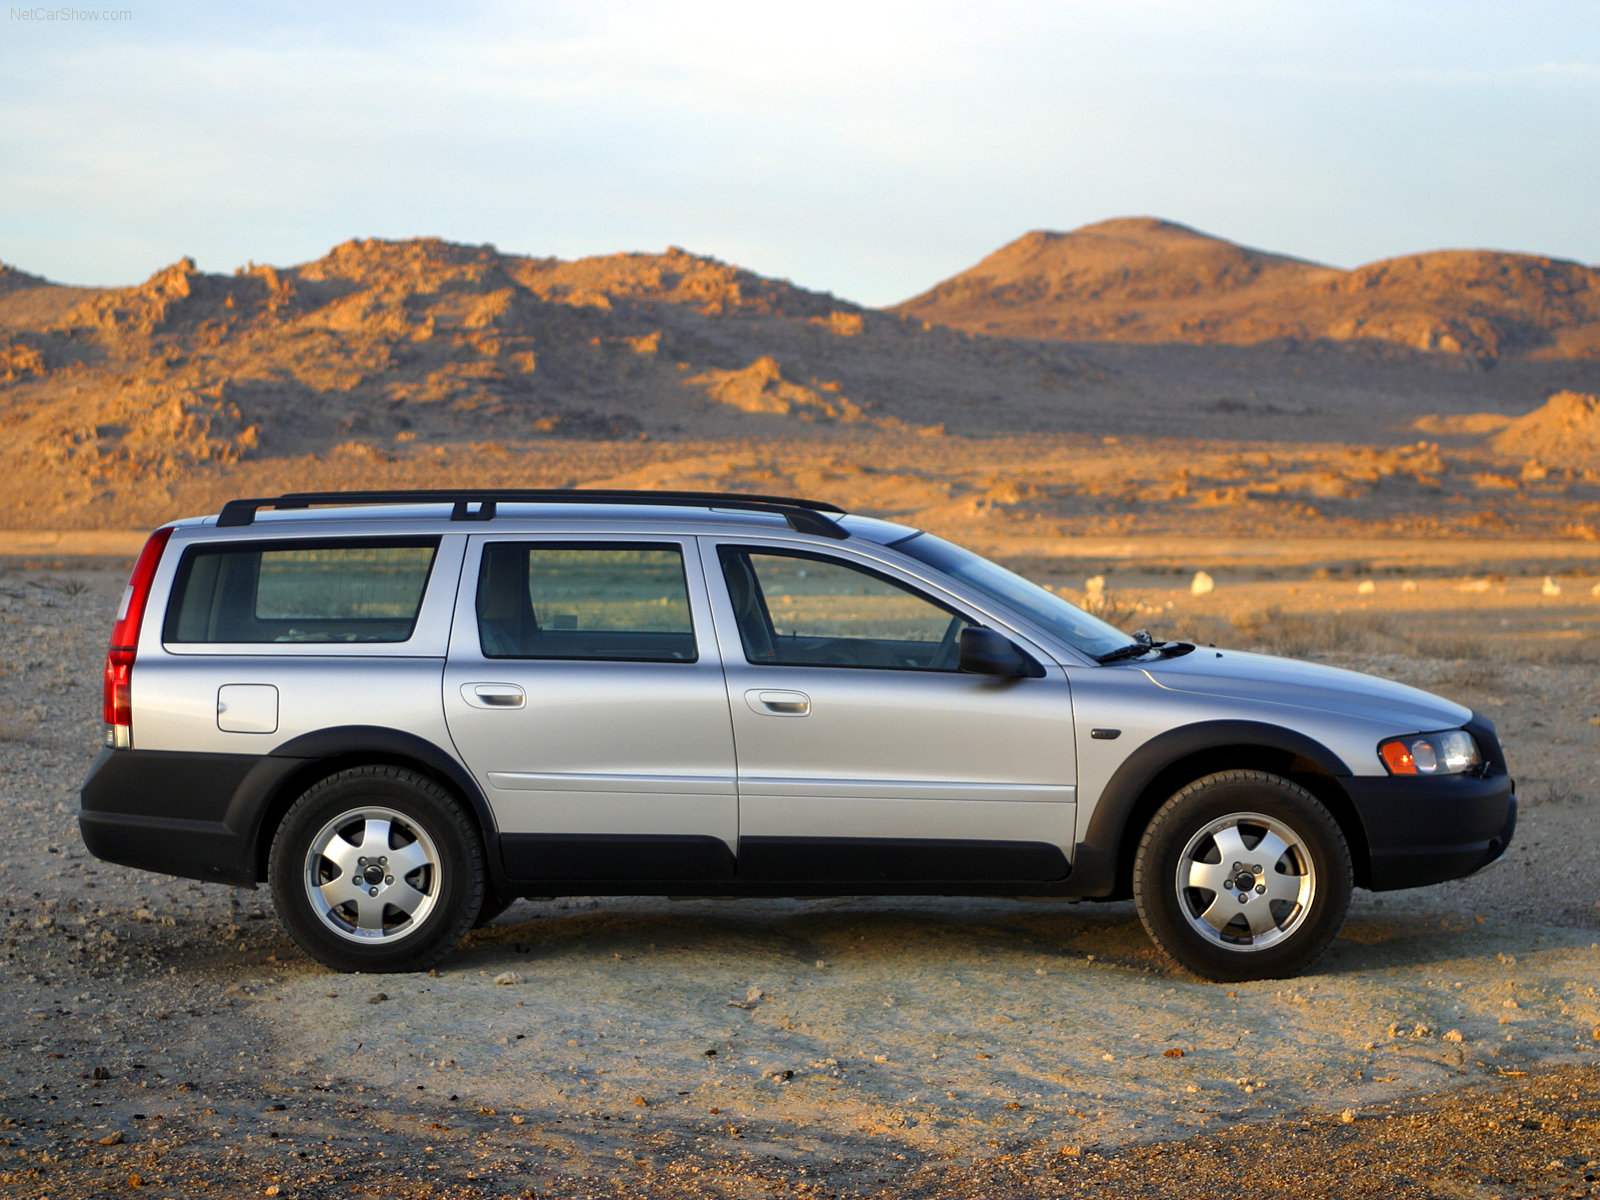 volvo xc70 cross country info page some good pics of 2nd generation